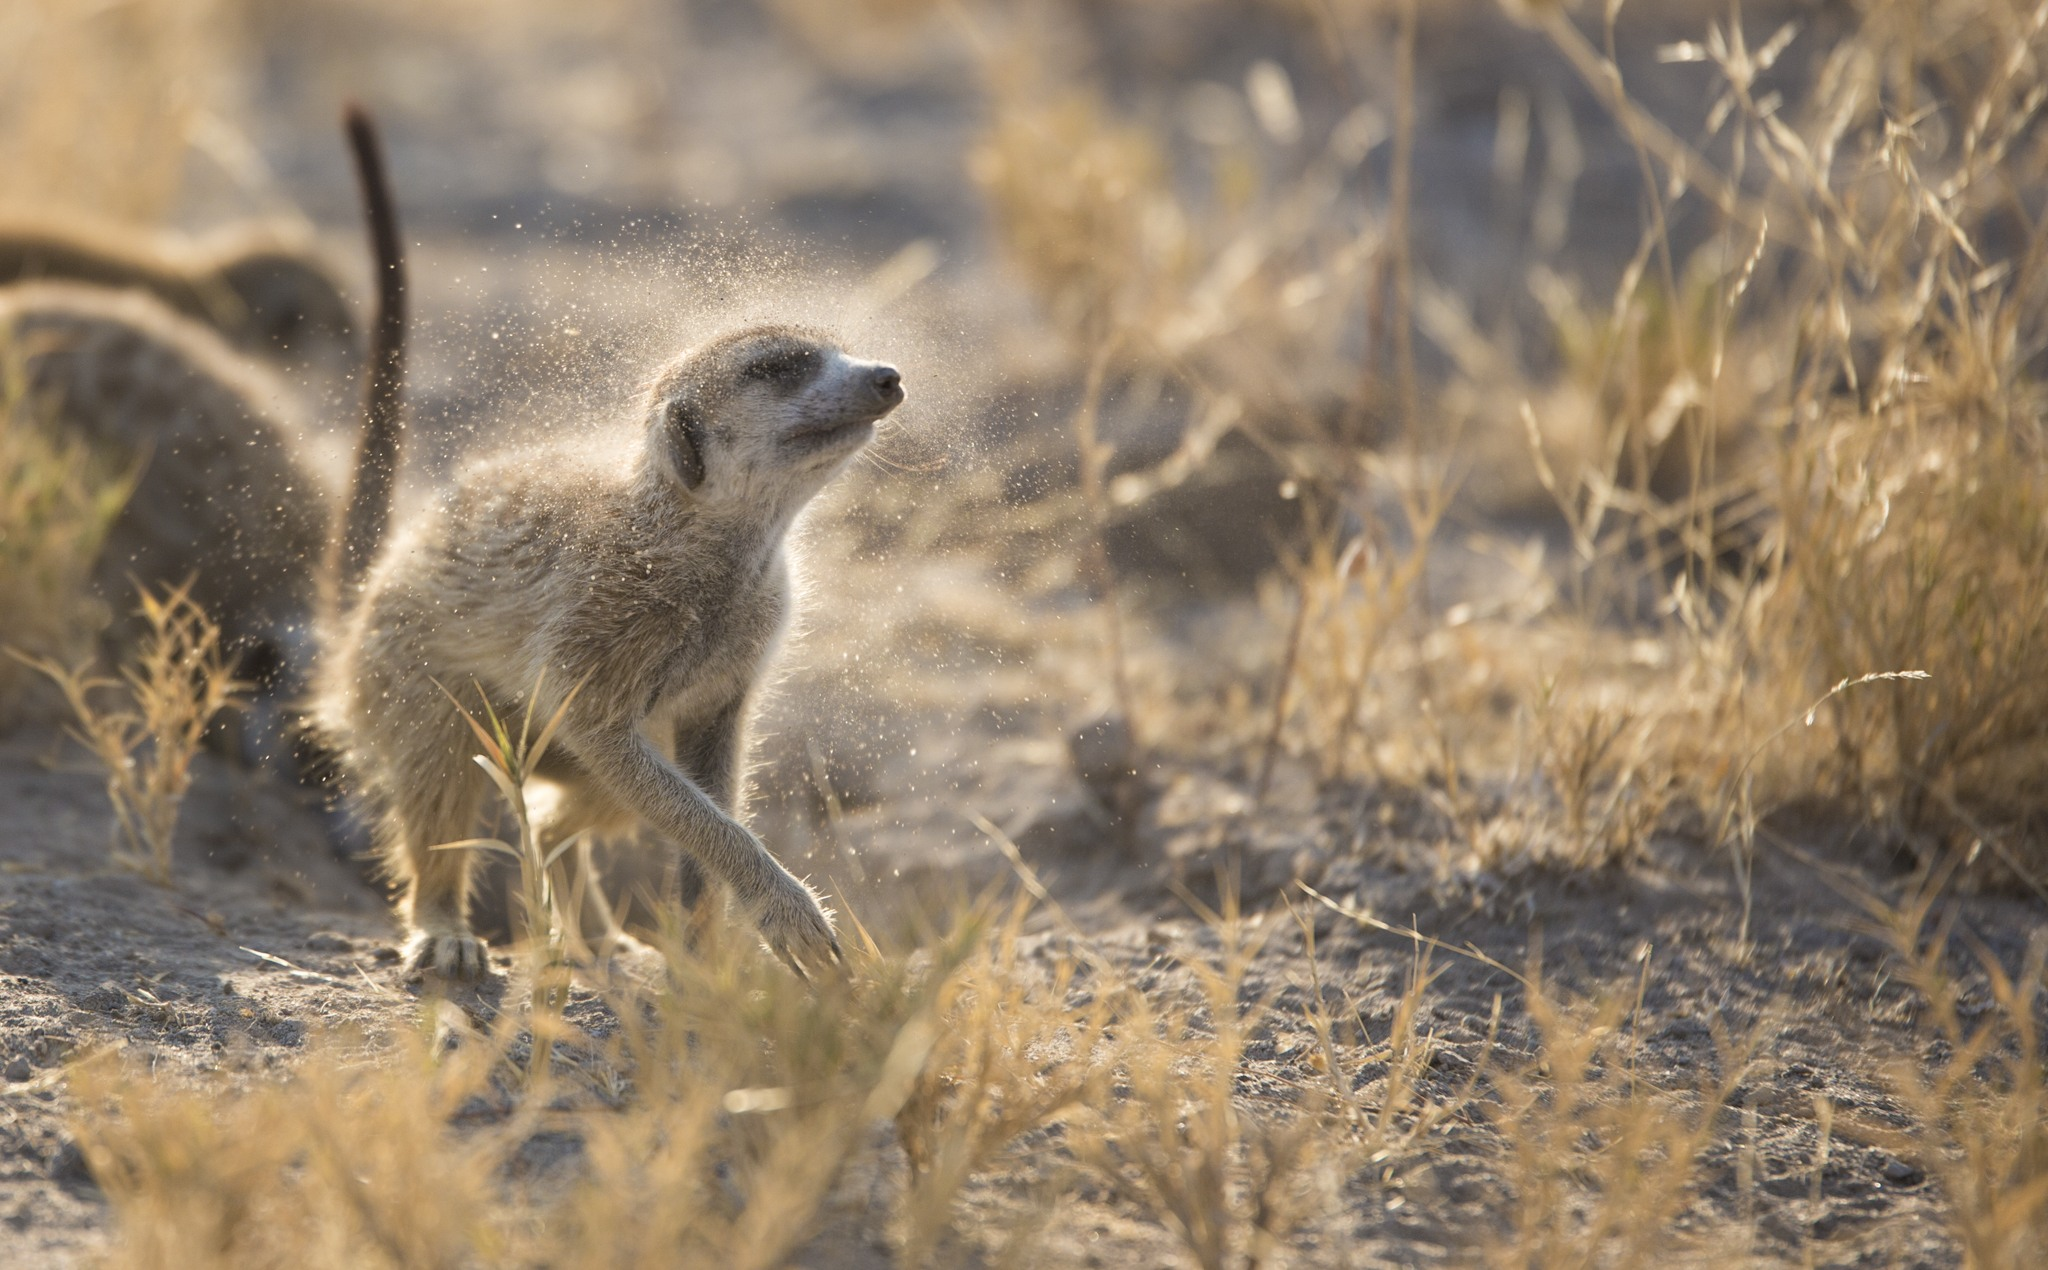 Meerkat having a morning shake in Botswana